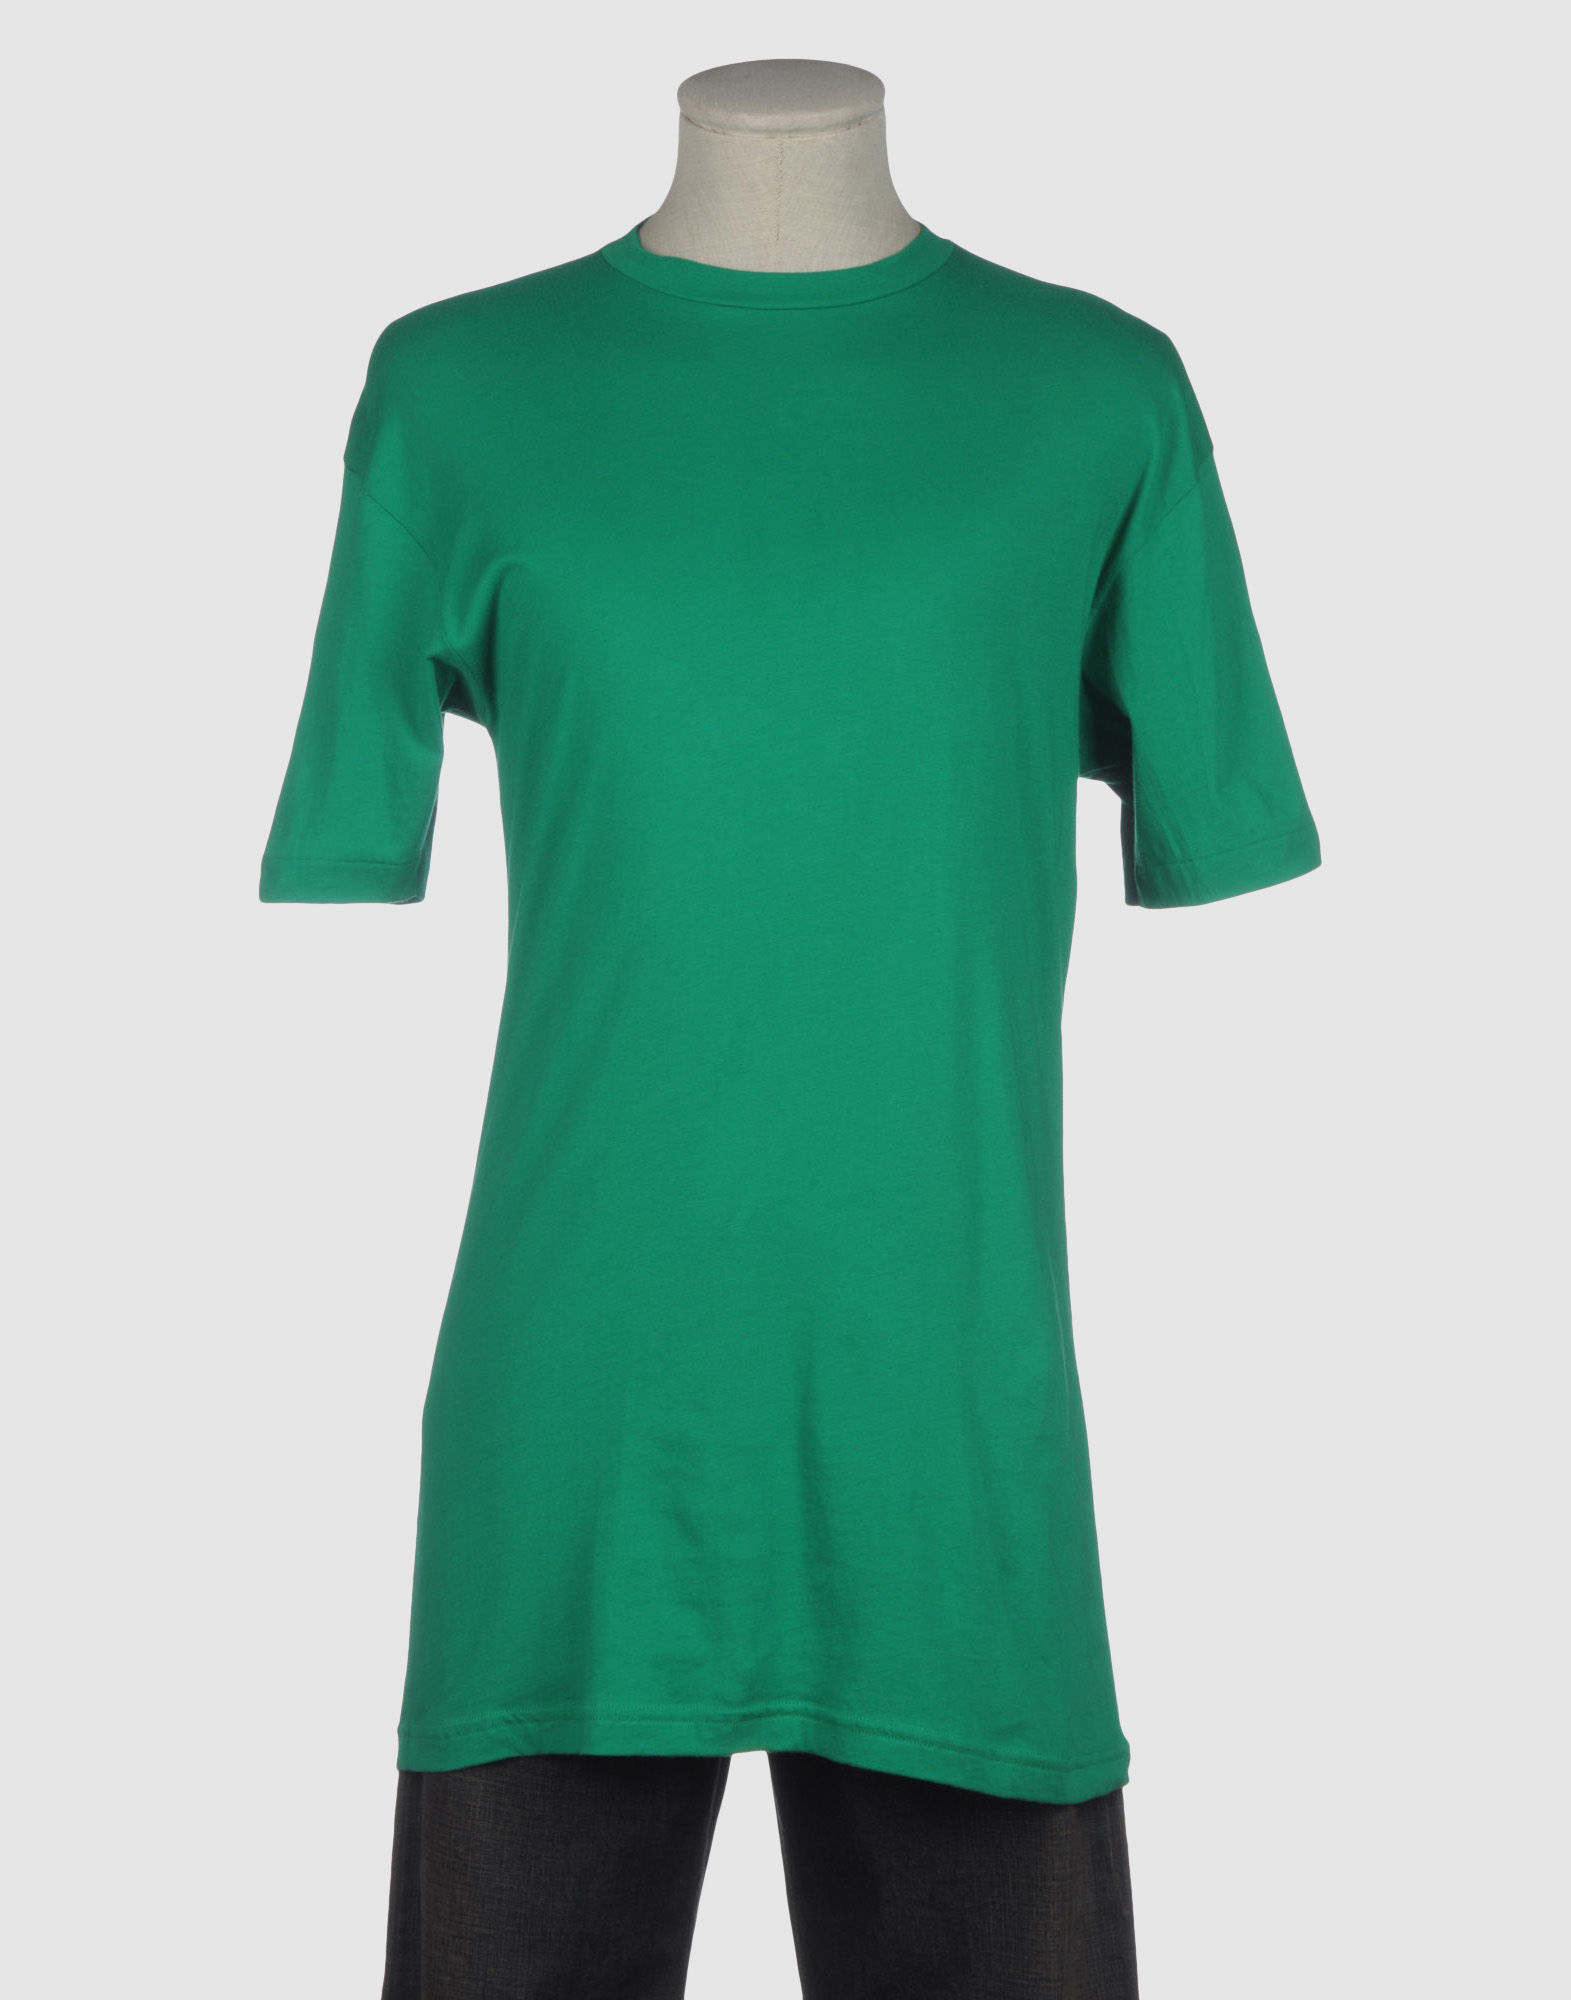 American apparel short sleeve t shirt in green for men lyst for American apparel custom t shirts